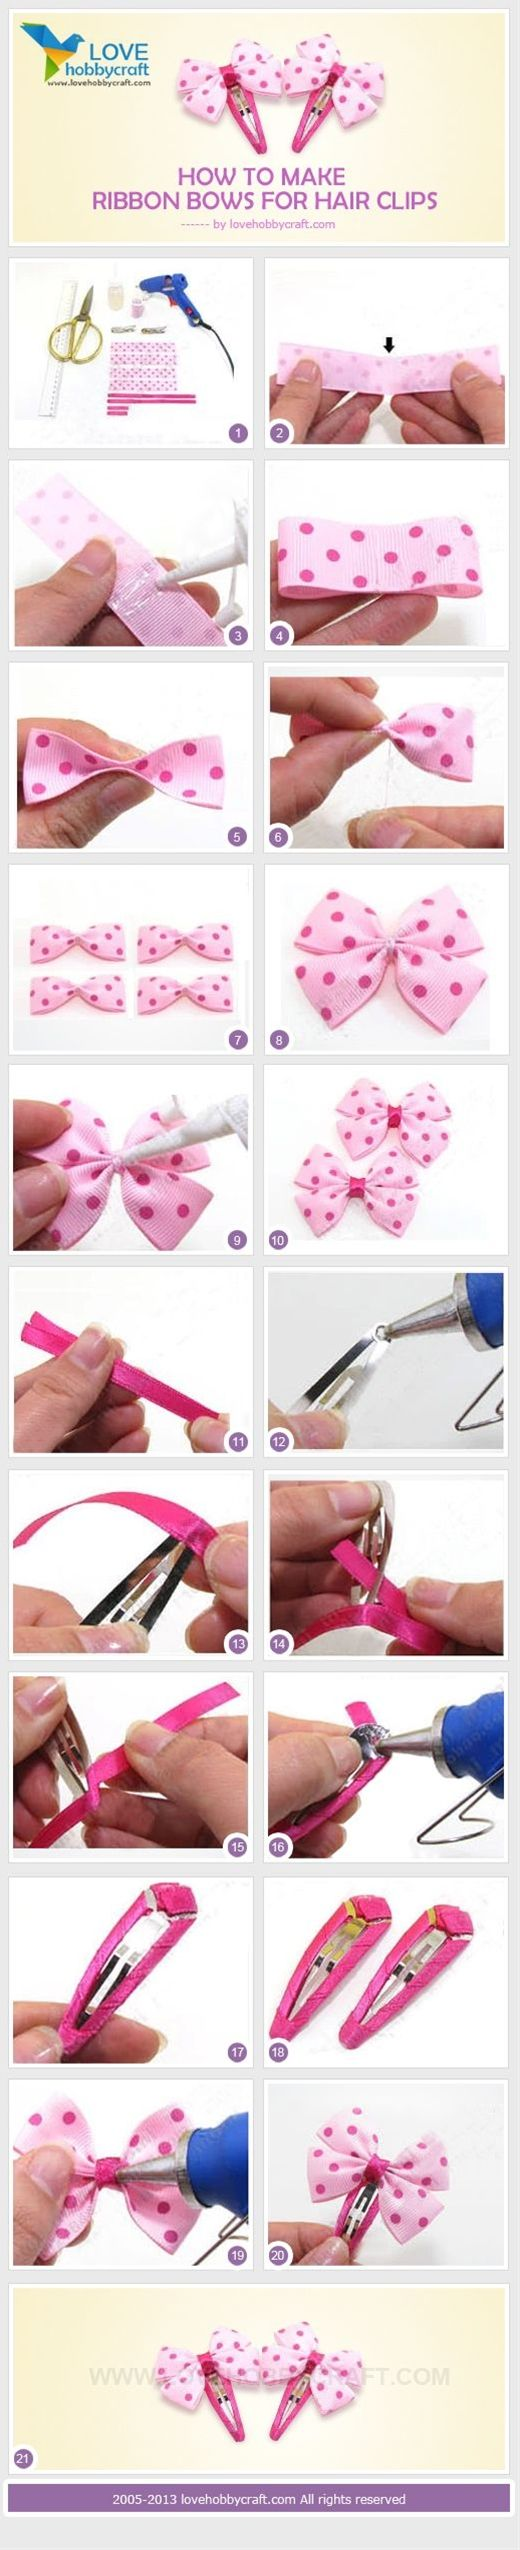 How to make ribbon bows for hair clips